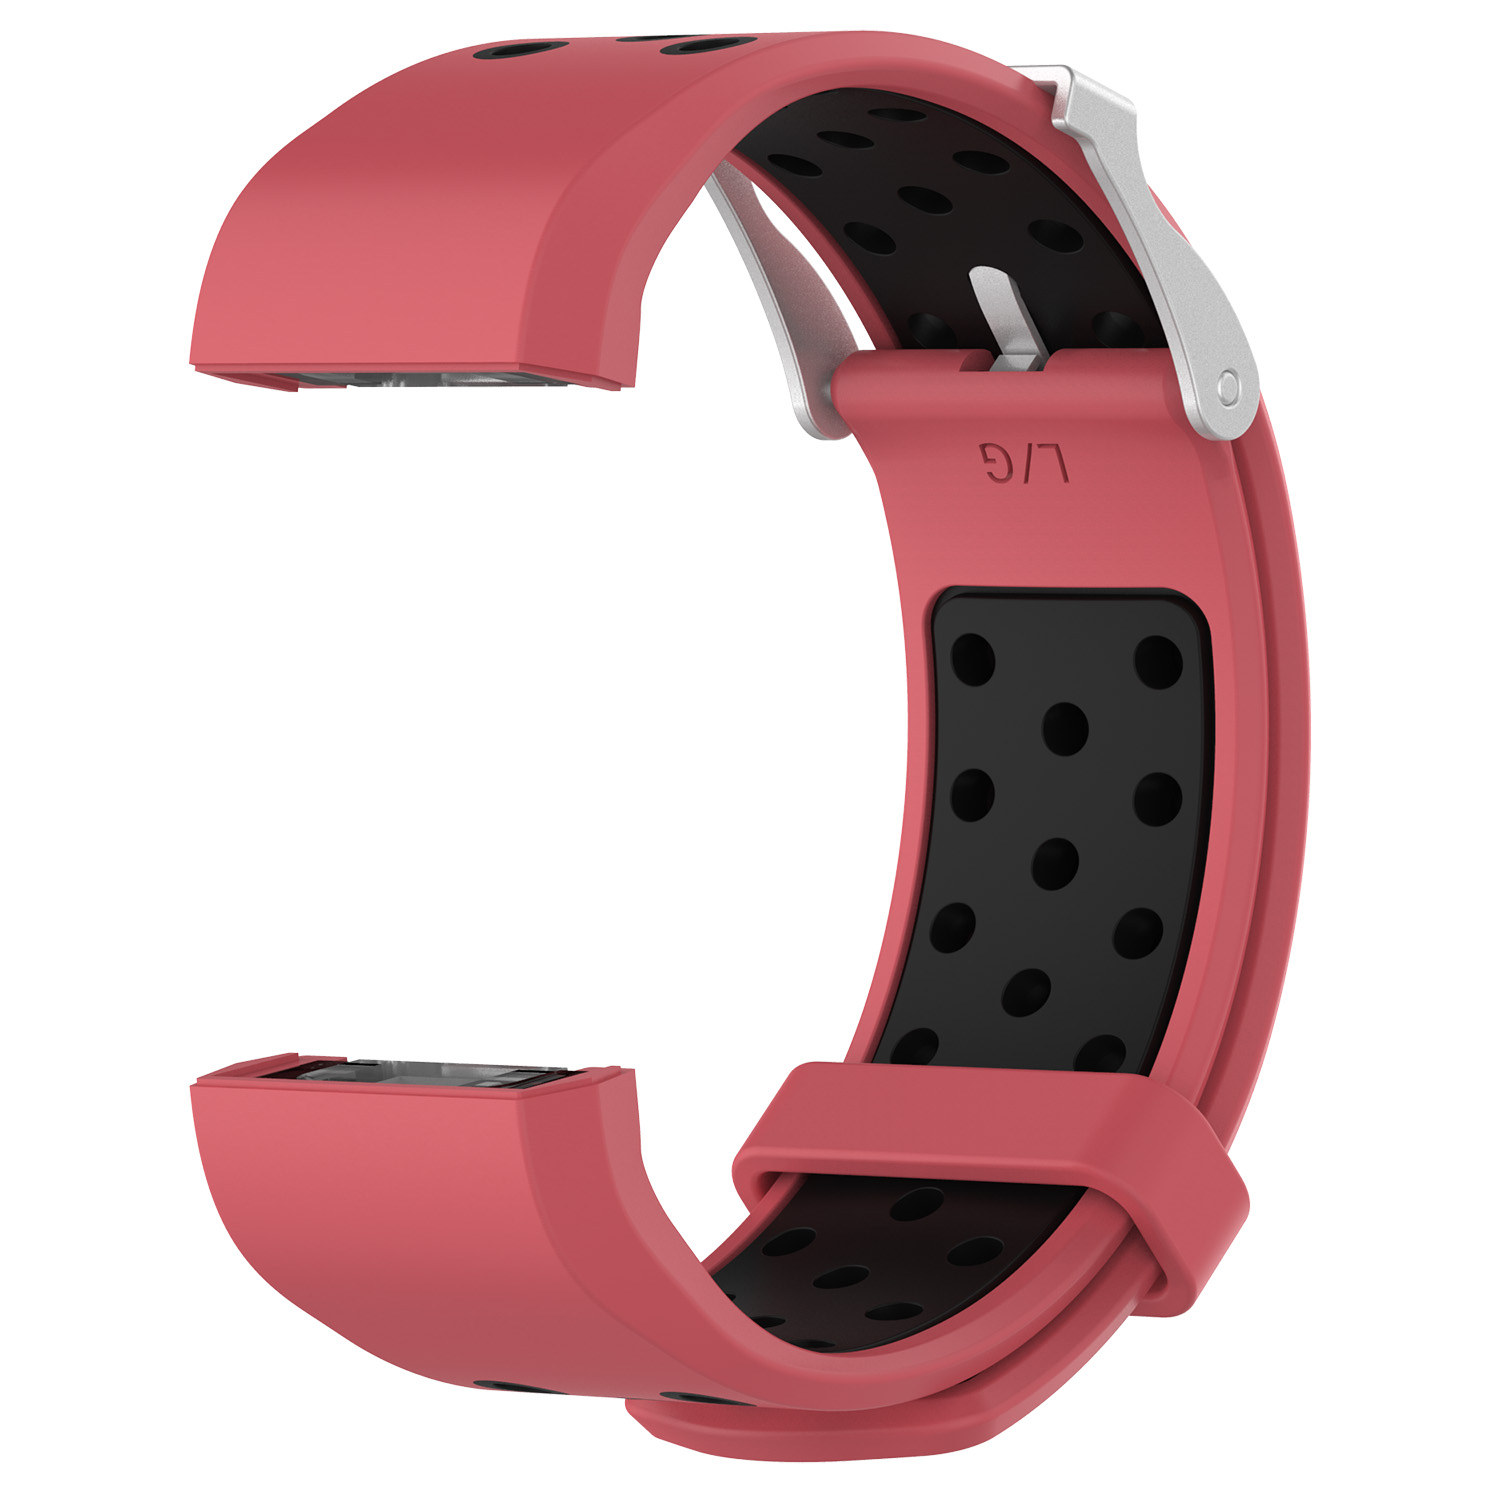 Replacement-Silicone-Wristband-Watch-Strap-Bands-Bracelet-For-Fitbit-Charge-2 thumbnail 86